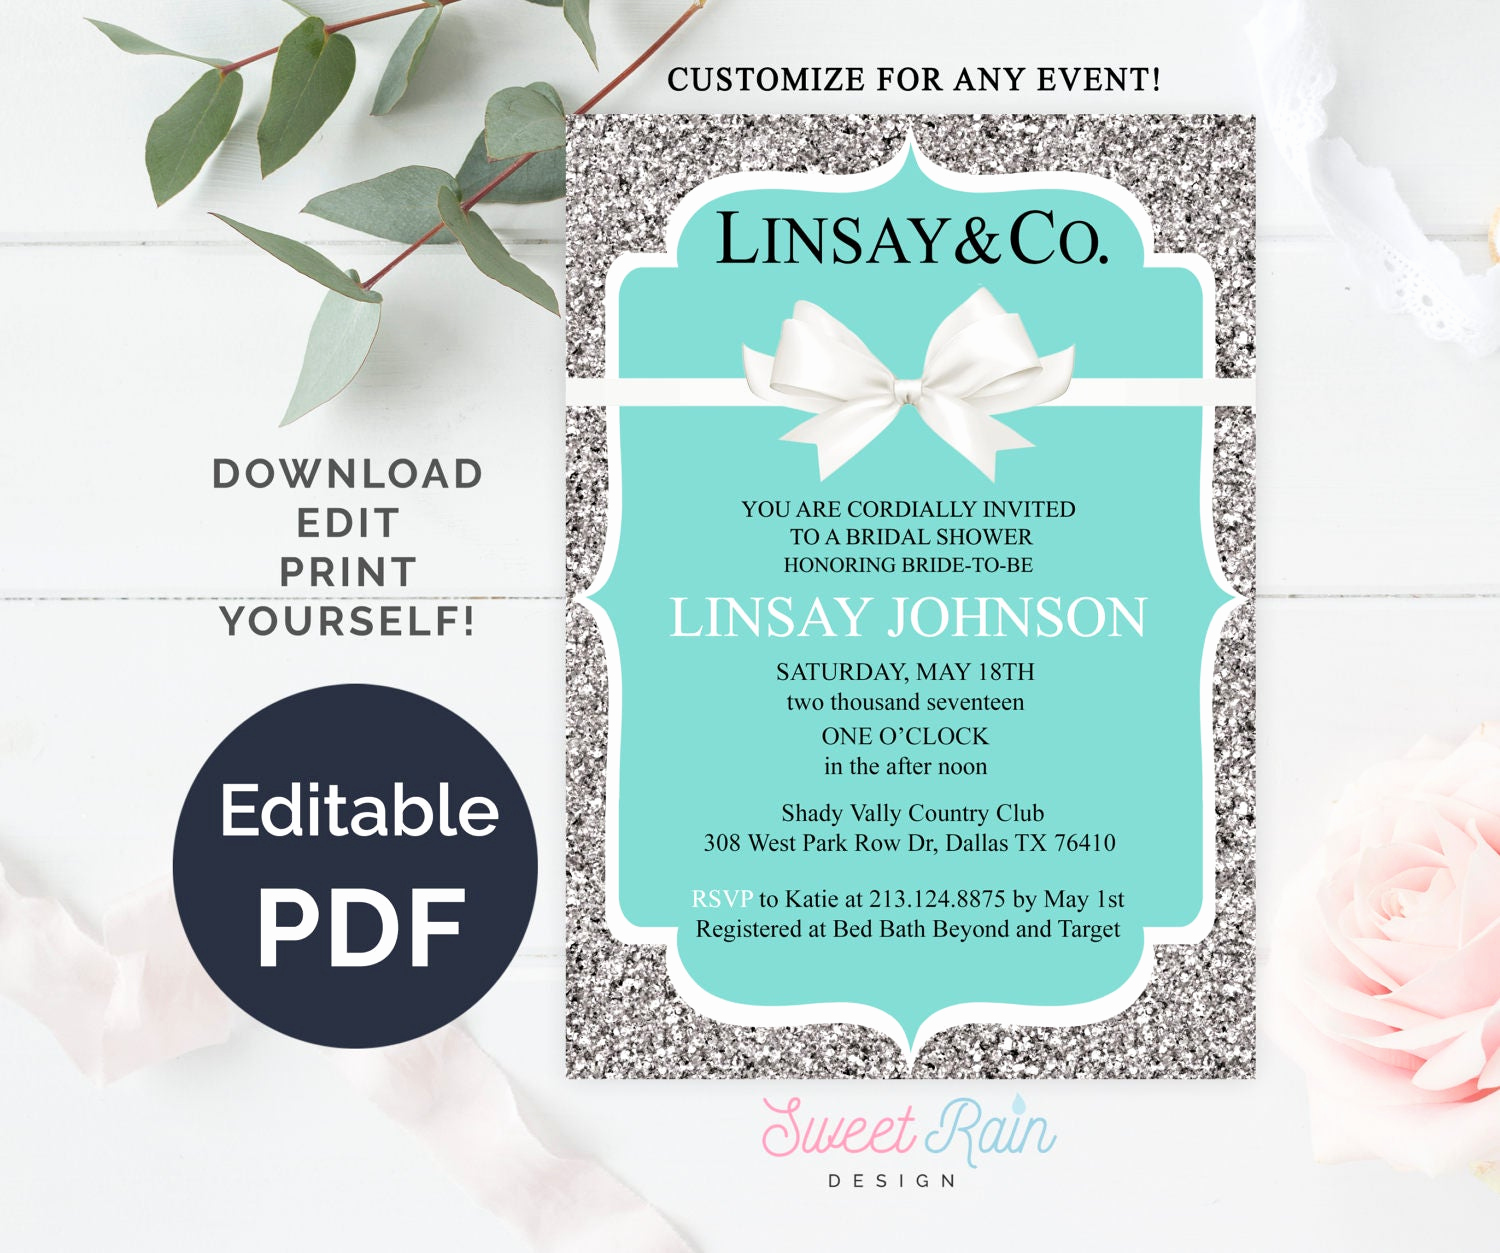 Tiffany Baby Shower Invitation Awesome Personalized Tiffany Invitation Template Breakfast Tiffanys